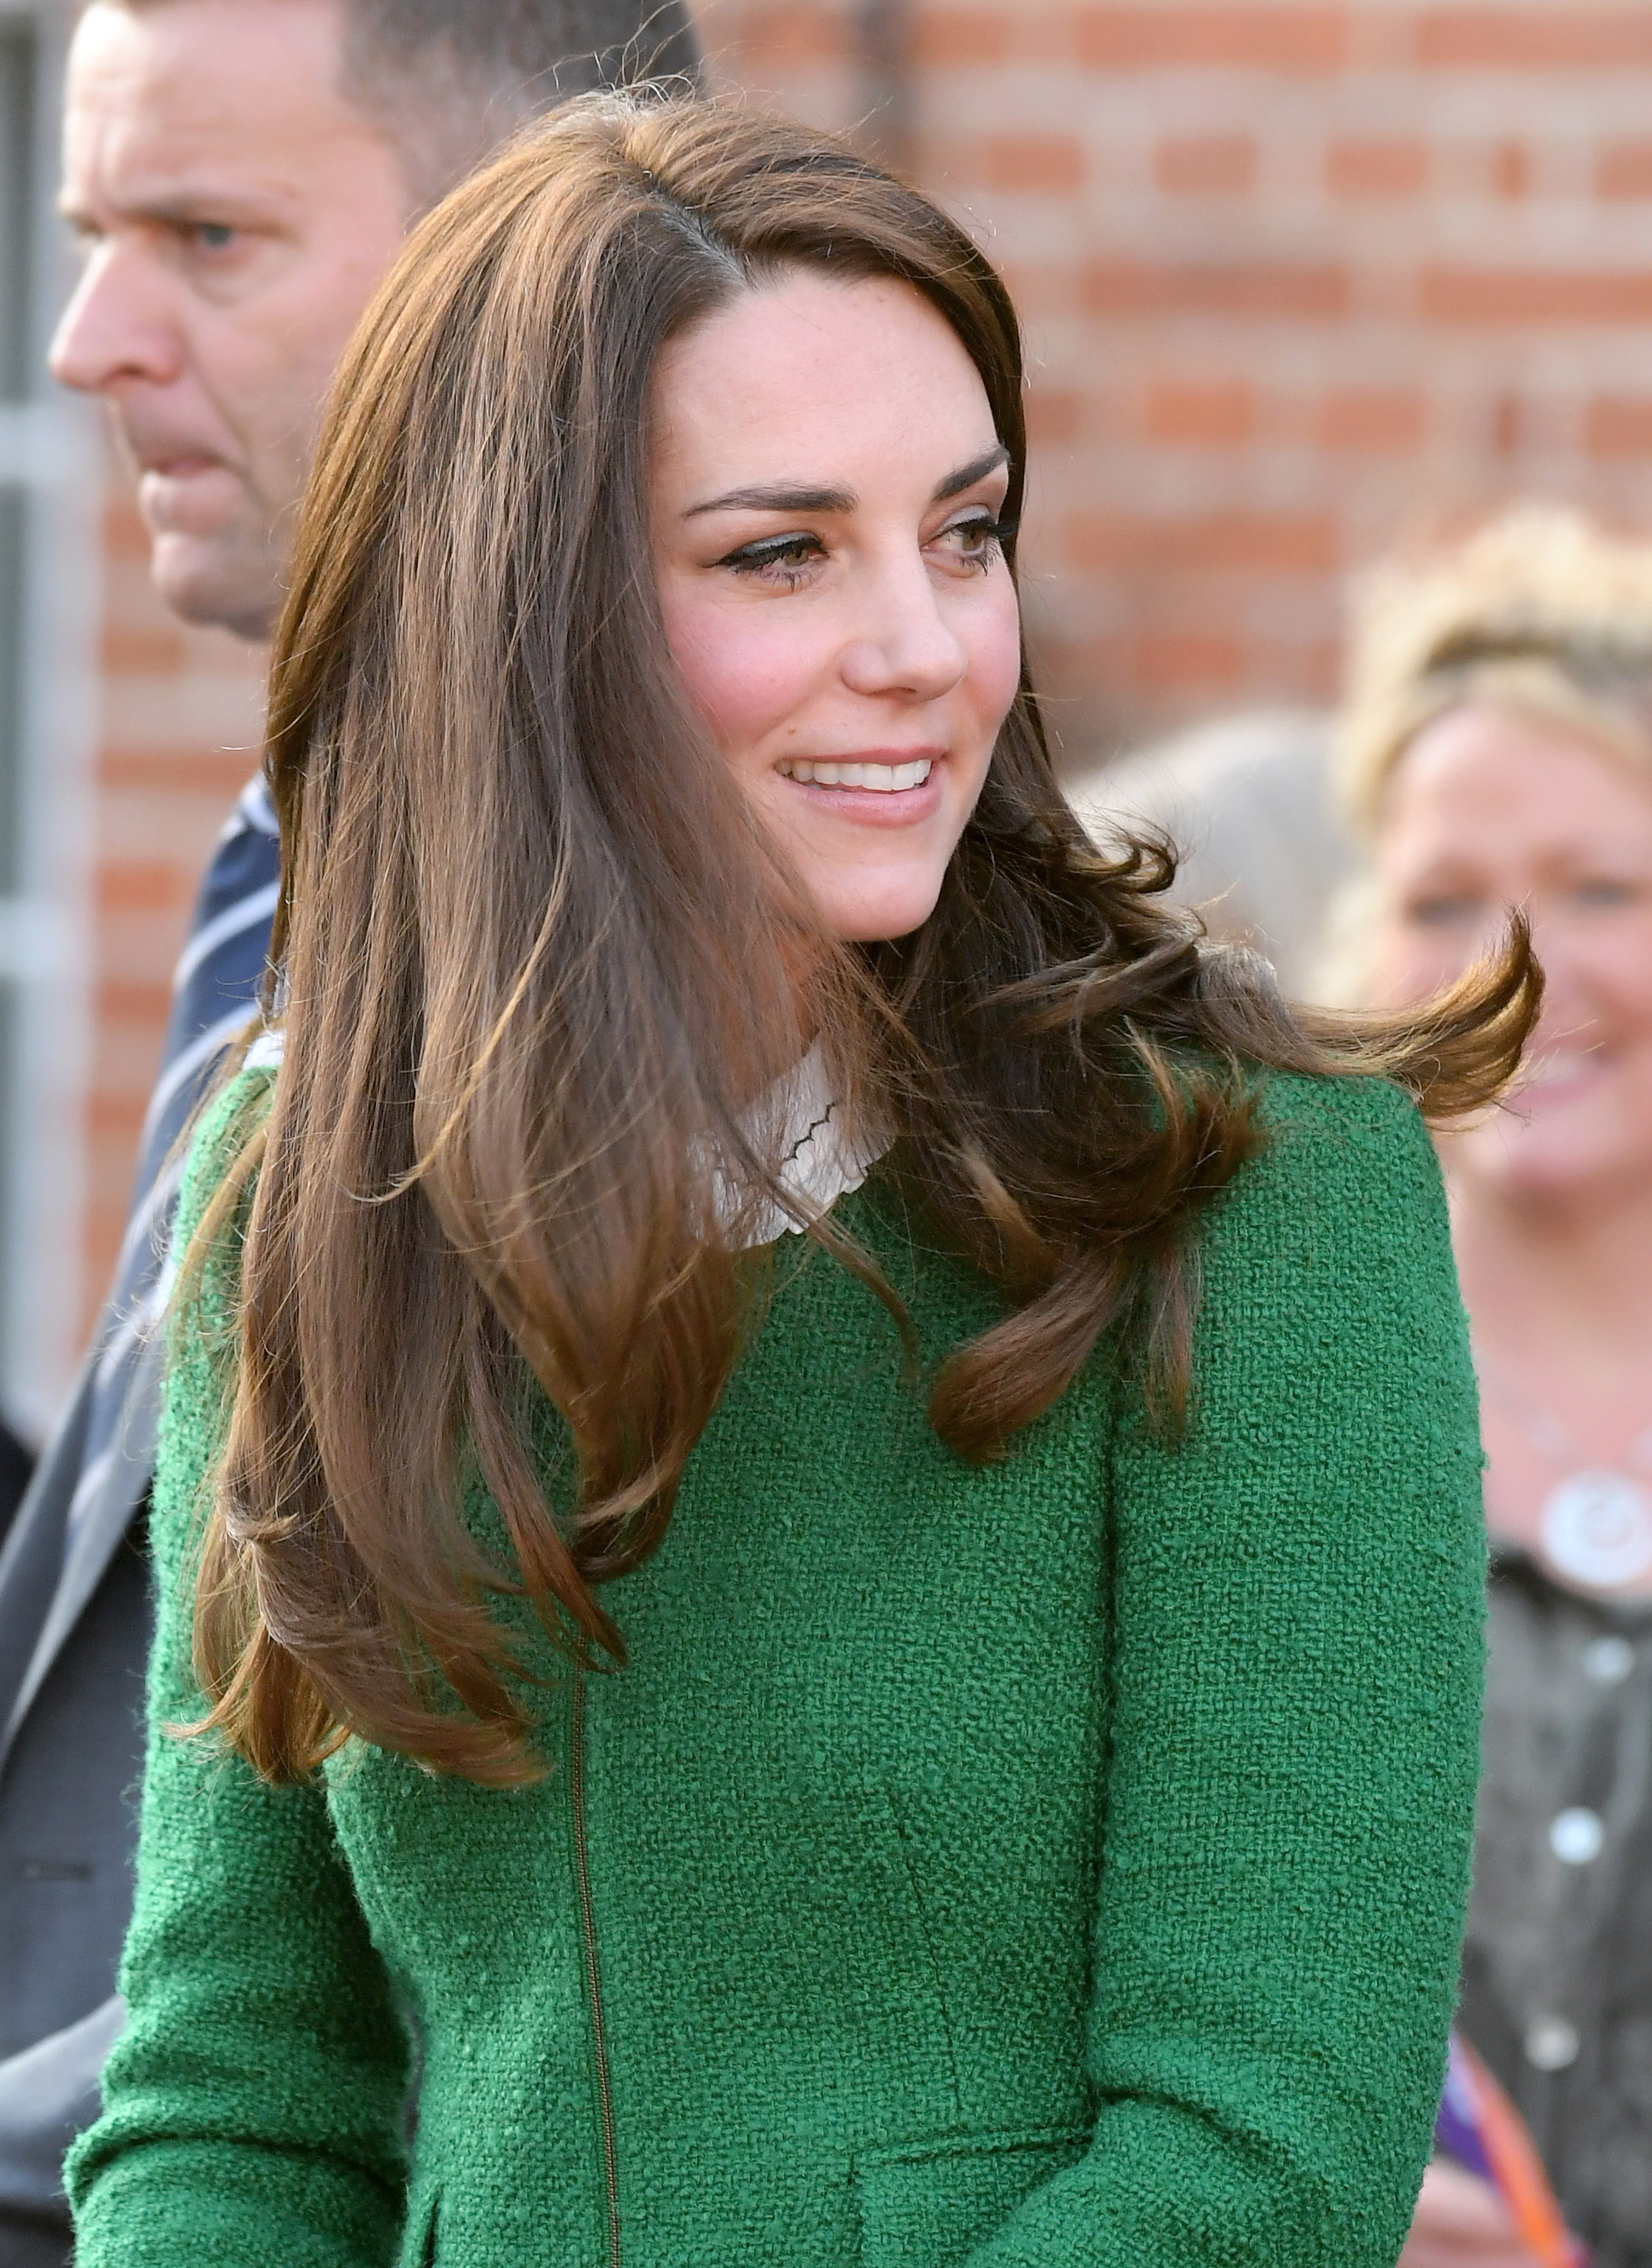 The Duchess of Cambridge in a green skirt suit, strikingly similar to one worn by Ivanka Trump. Image: Getty.